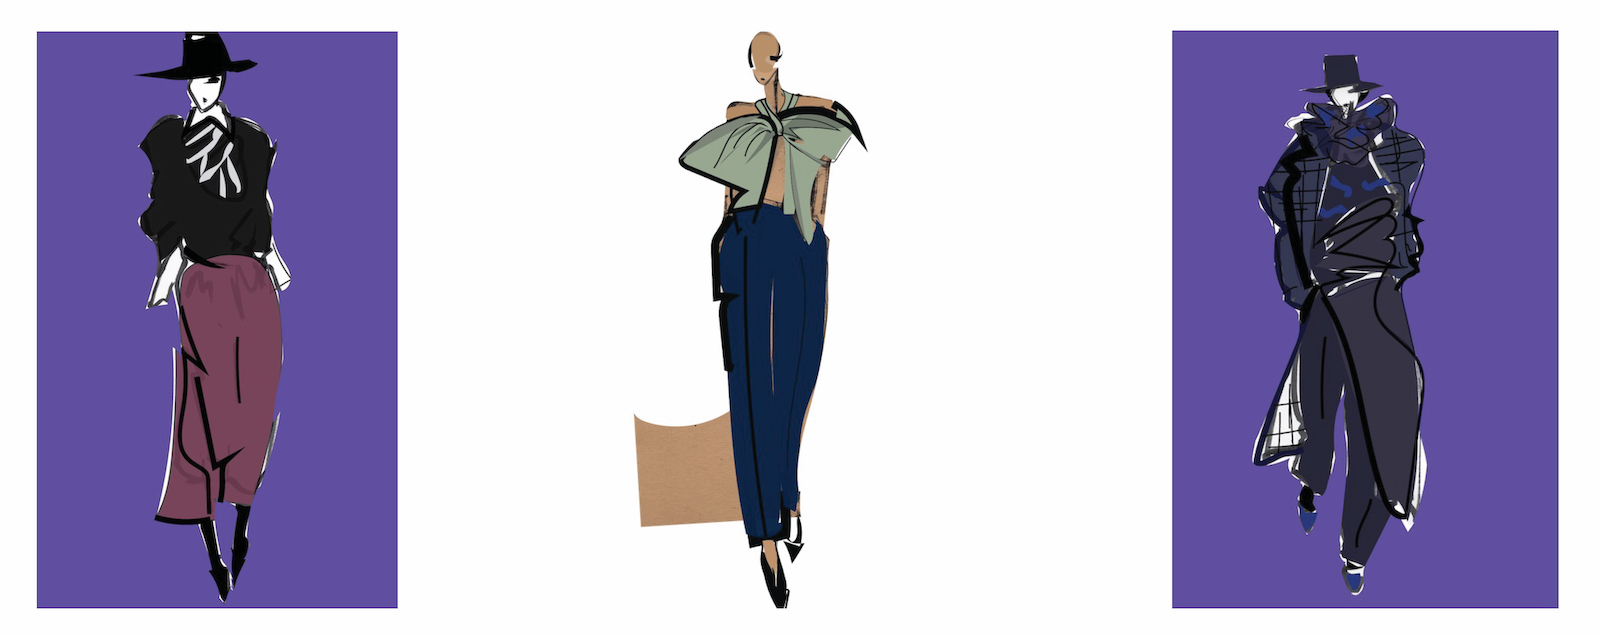 fashion illustration examples 2